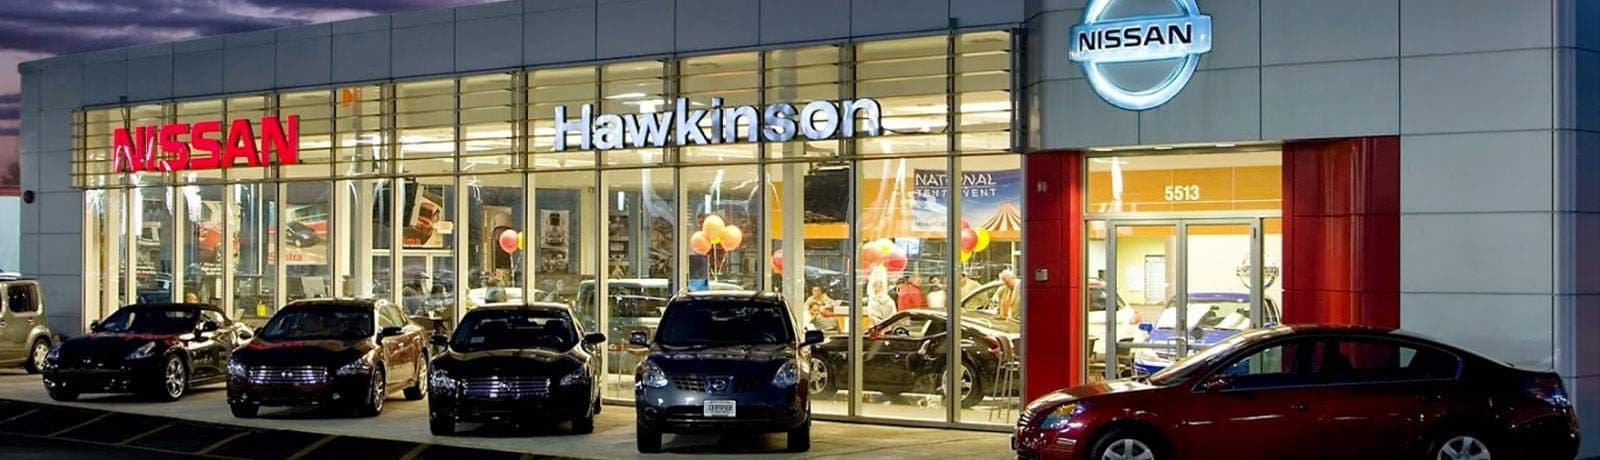 Recommended Uber/lyft at Hawkinson Nissan